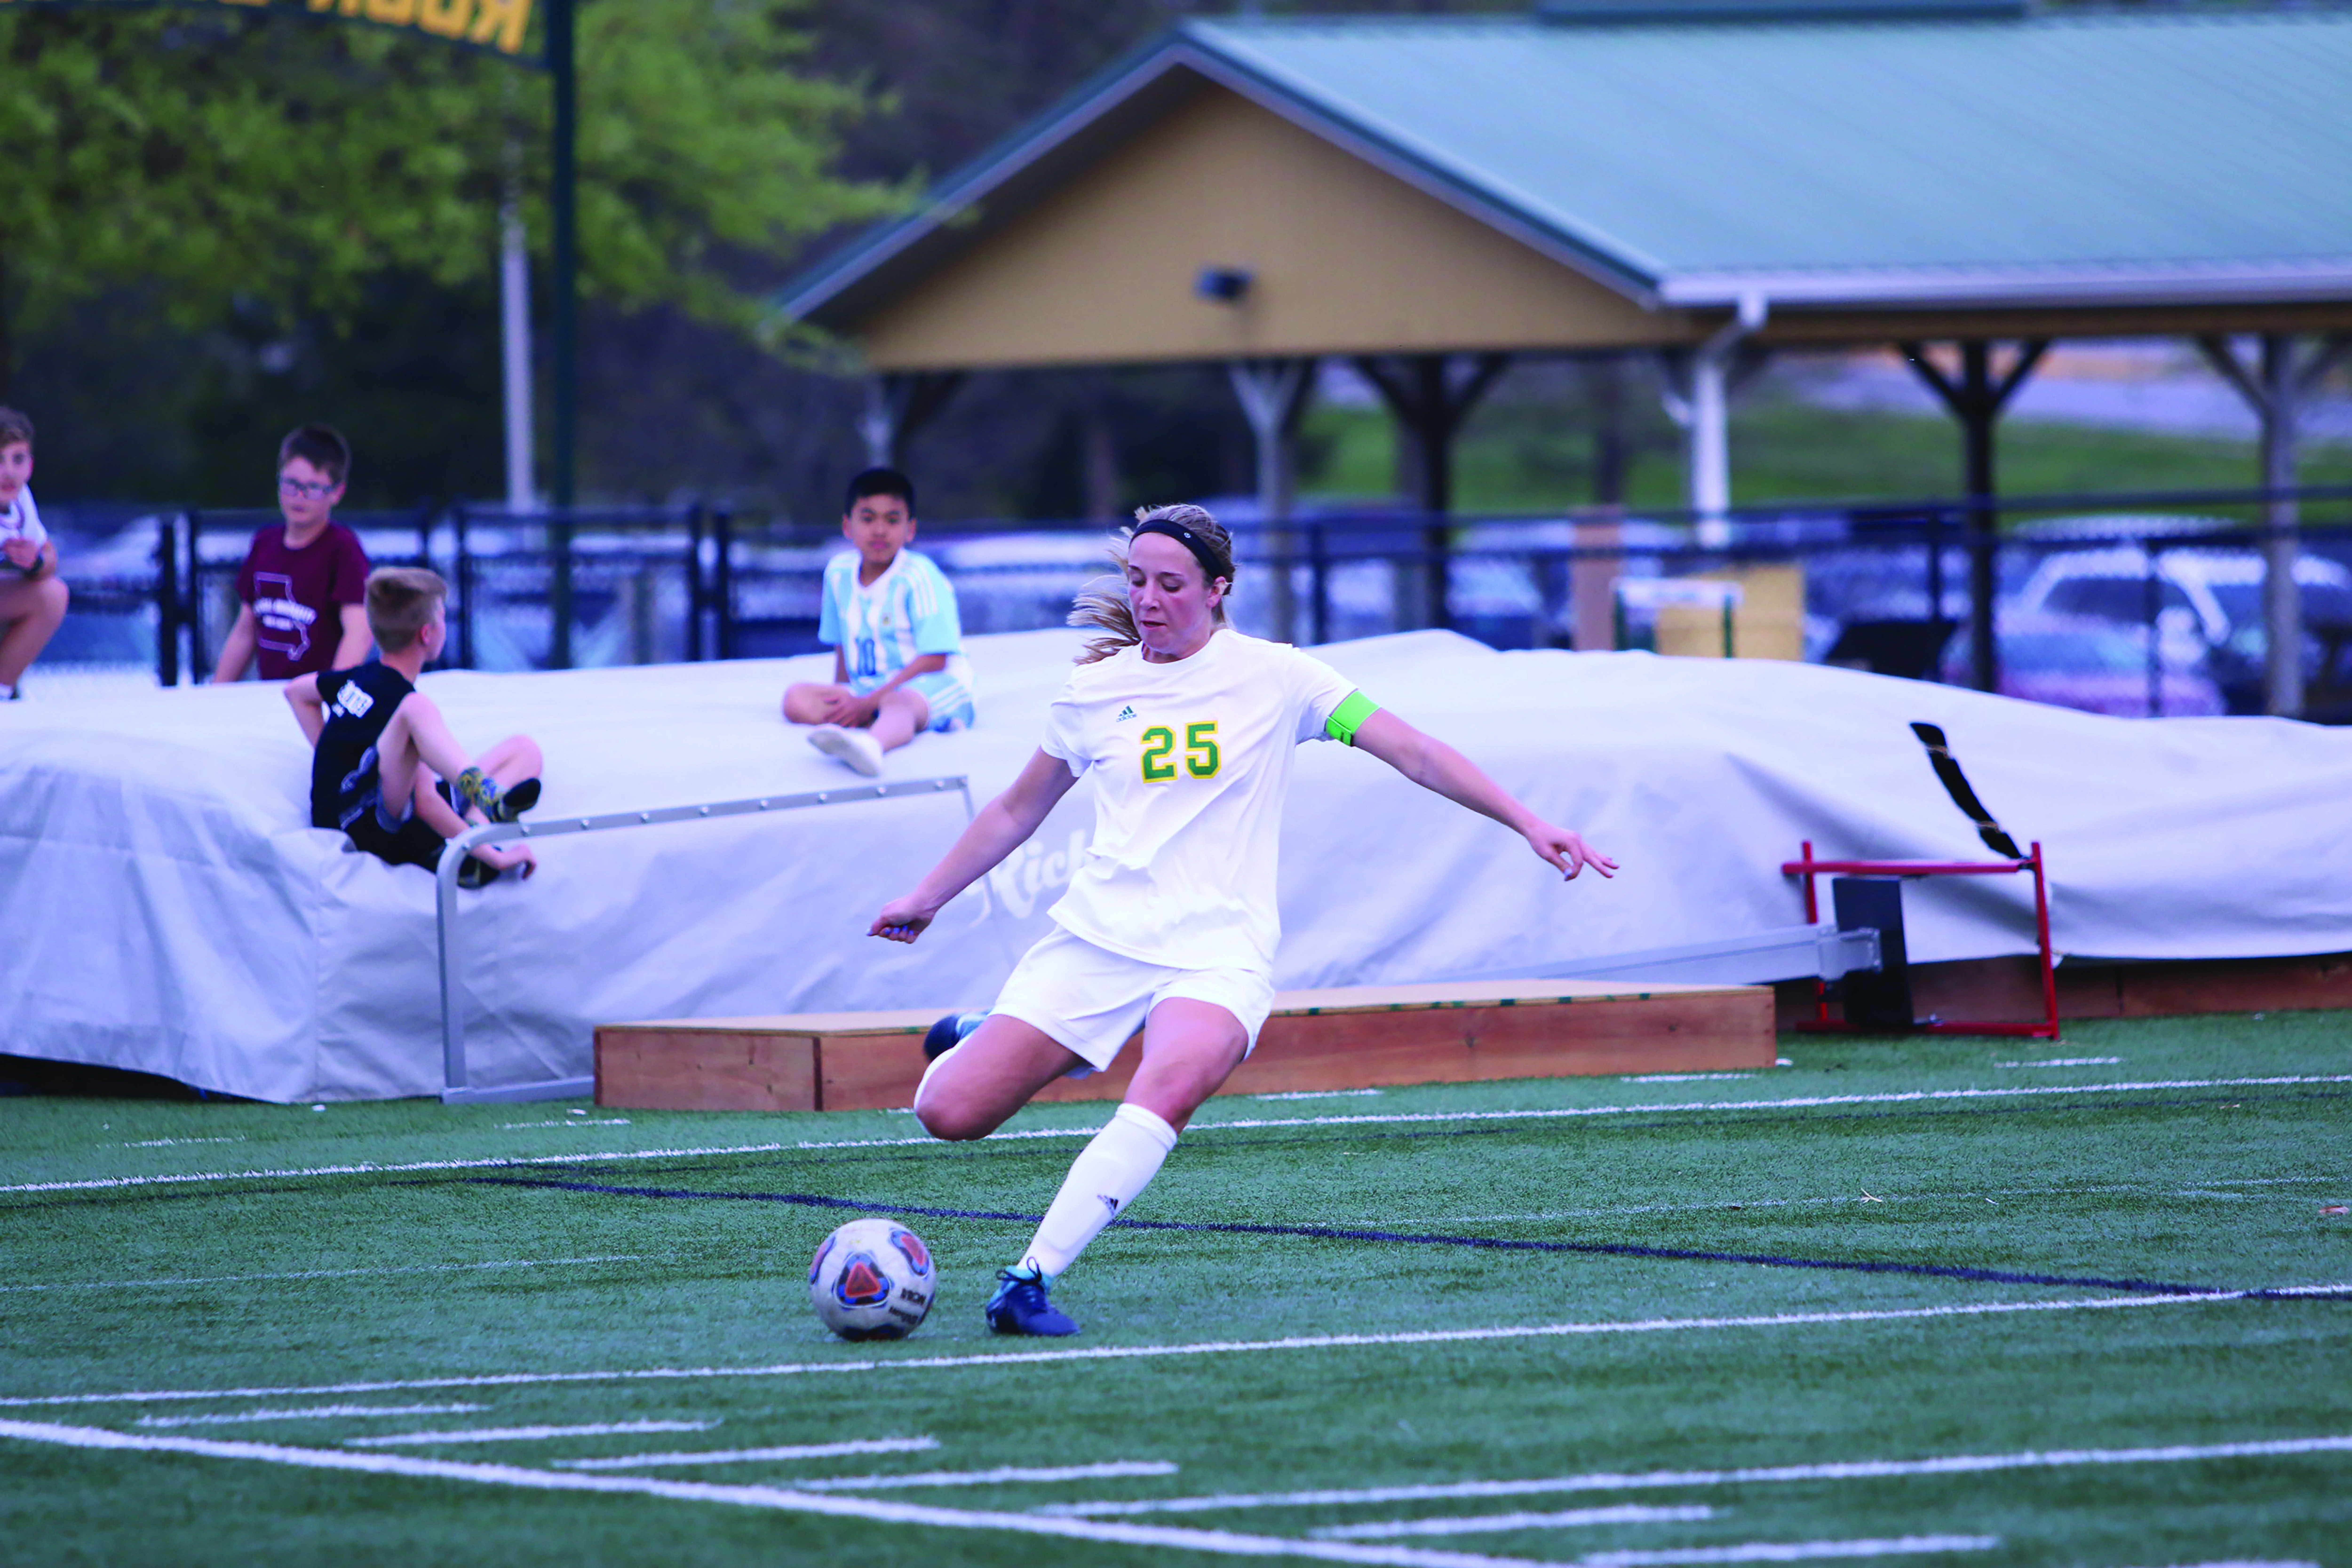 This is a photo of senior co-captain and defensive player Allison Floyd, going for the ball during the girls soccer game Wednesday, May 2. After ending a double overtime tied at zero, RBHS and HHS went into penalty kicks. The Lady Bruins fell to the Kewpies with a final score of (1-0 )and (4-3) in penalty kicks. The team will compete in districts on May 14.